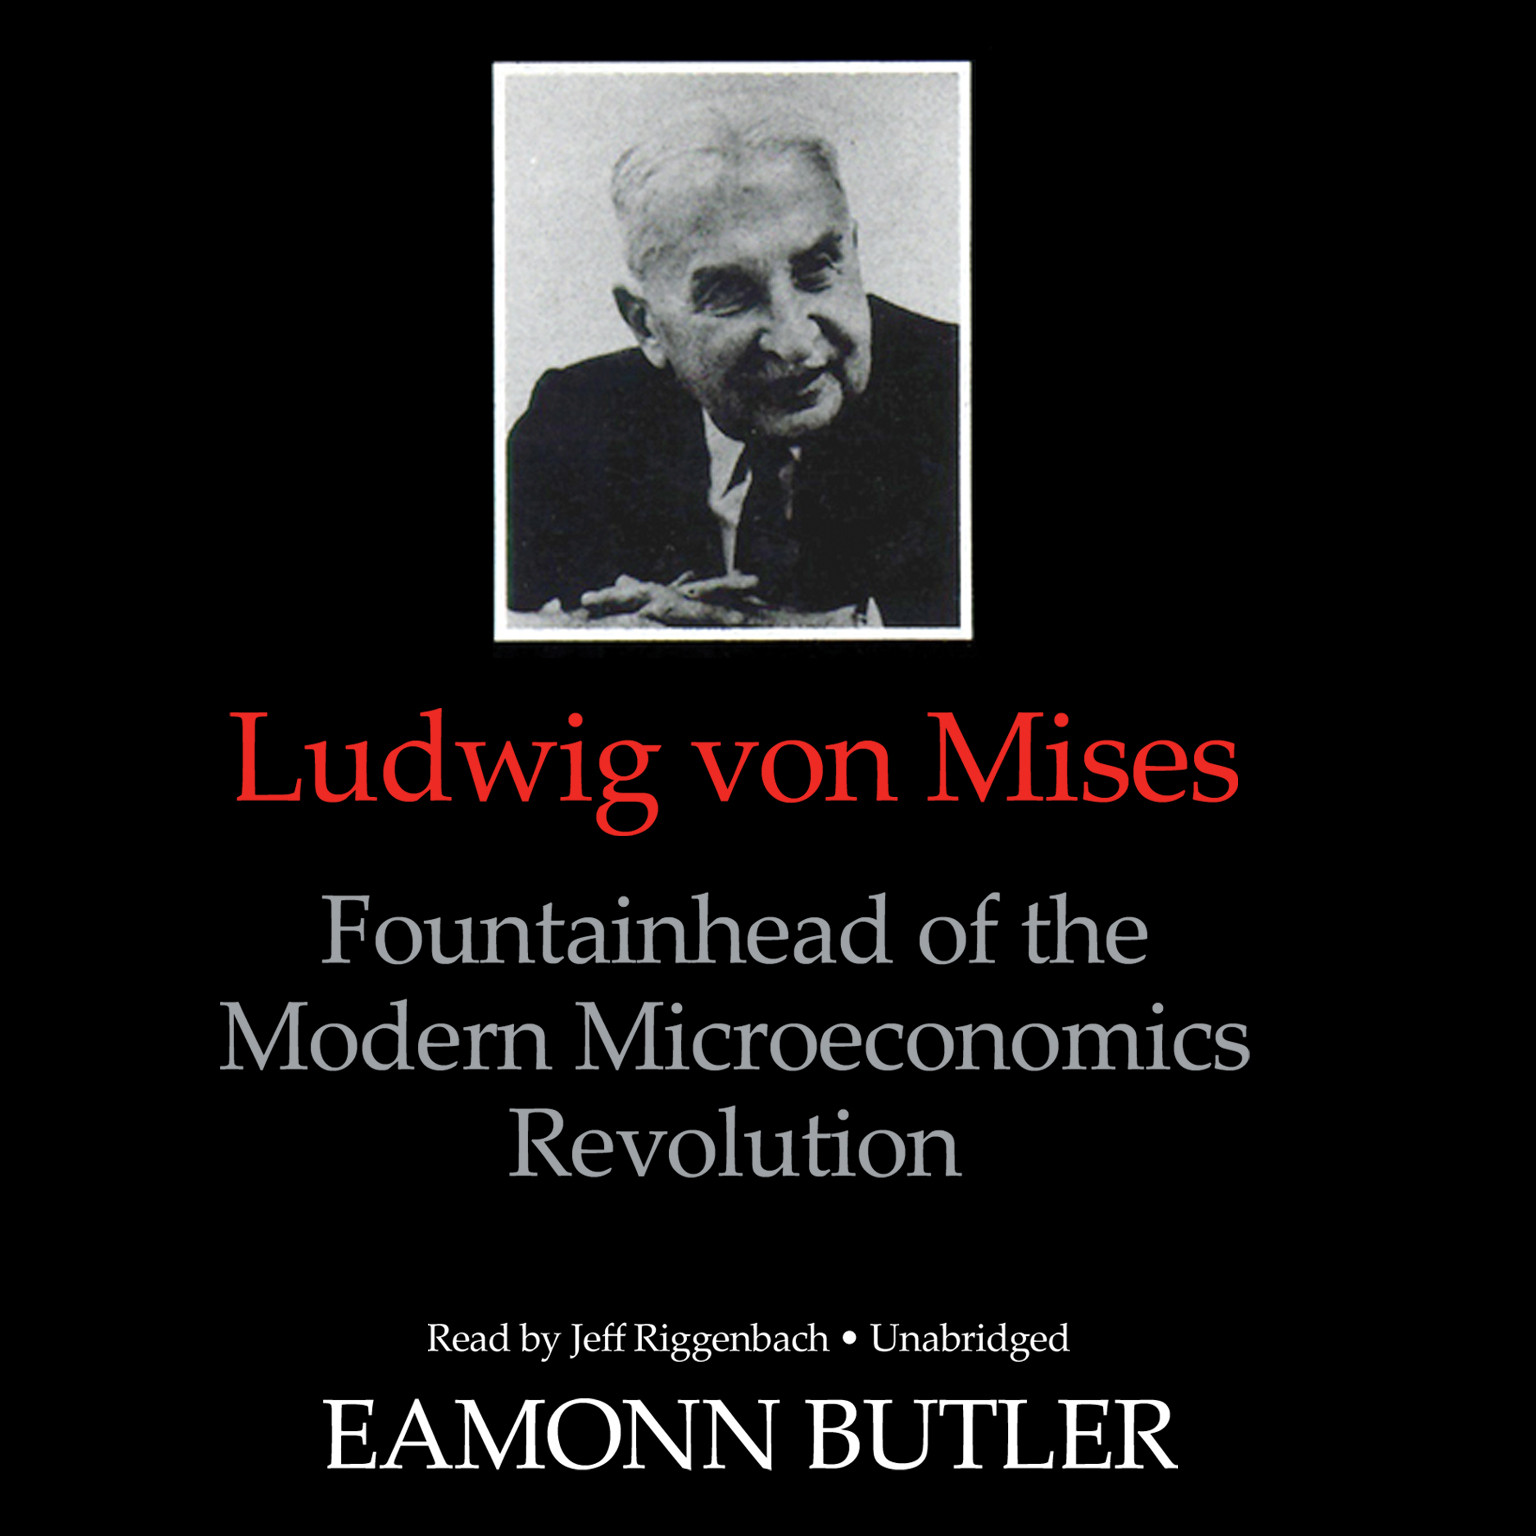 Printable Ludwig von Mises: Fountainhead of the Modern Microeconomics Revolution Audiobook Cover Art